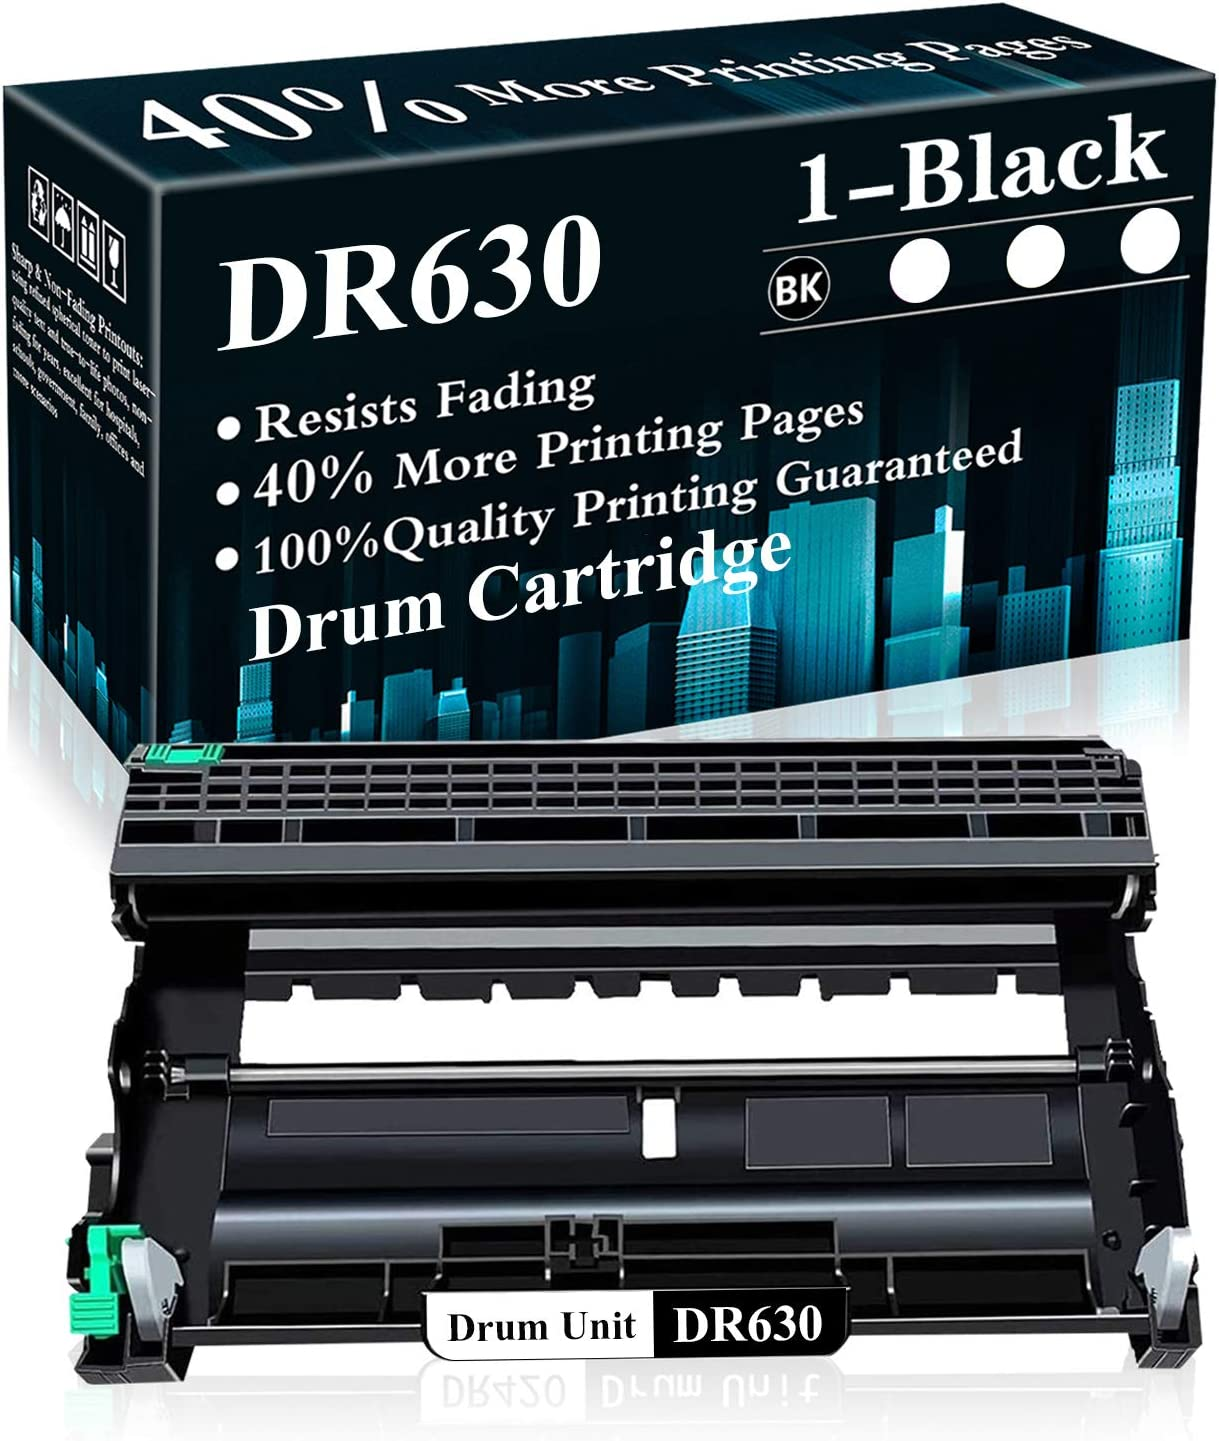 1 Pack DR630 Black Drum Unit Replacement for Brother HL-L2300D L2305W L2320D L2340DW L2360DW L2380DW MFC-L2680W L2685DW L2700DW L2705DW L2720DW L2740DW DCP-L2520DW L2520DW Printer,Sold by TopInk